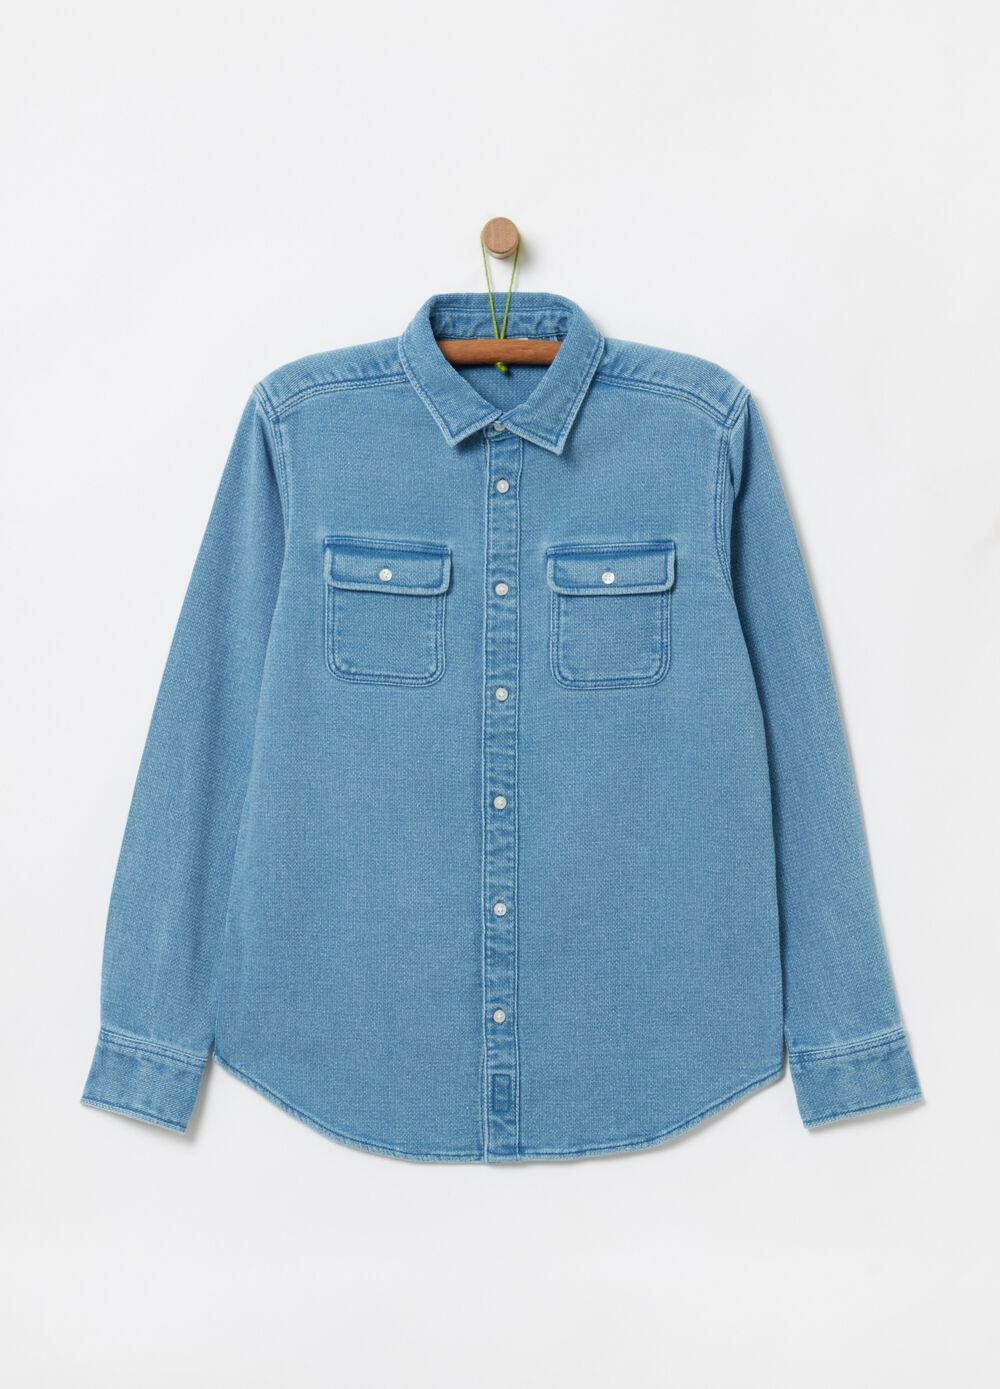 Denim shirt with pockets